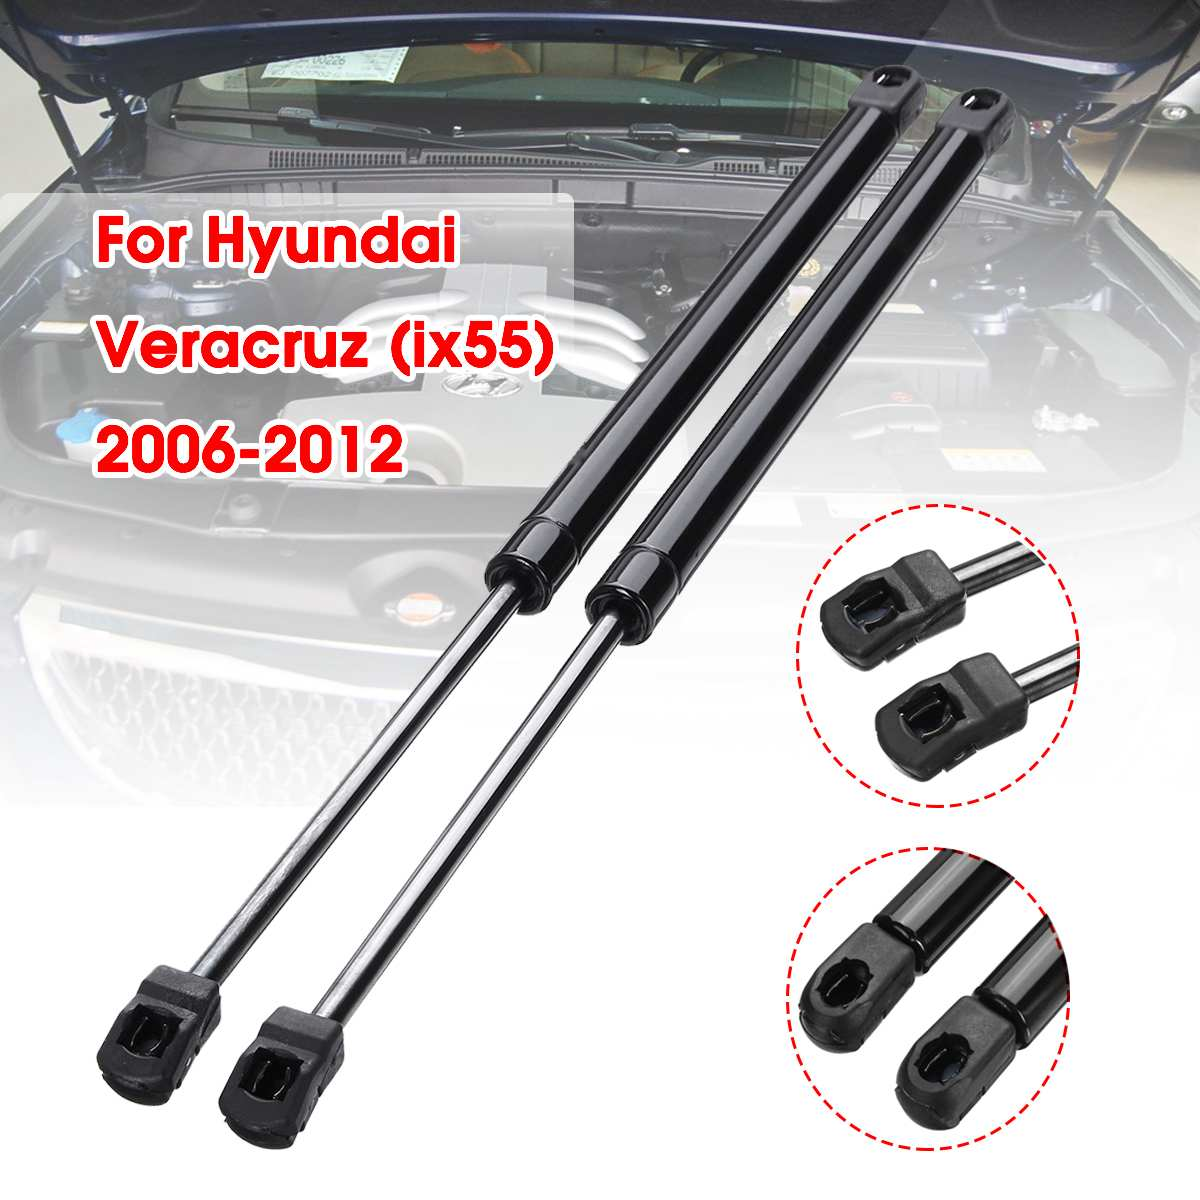 Car Front Bonnet Hood Modify Gas Struts Lift Support Shock Damper Bars For Hyundai Veracruz ix55 2006 - 2012